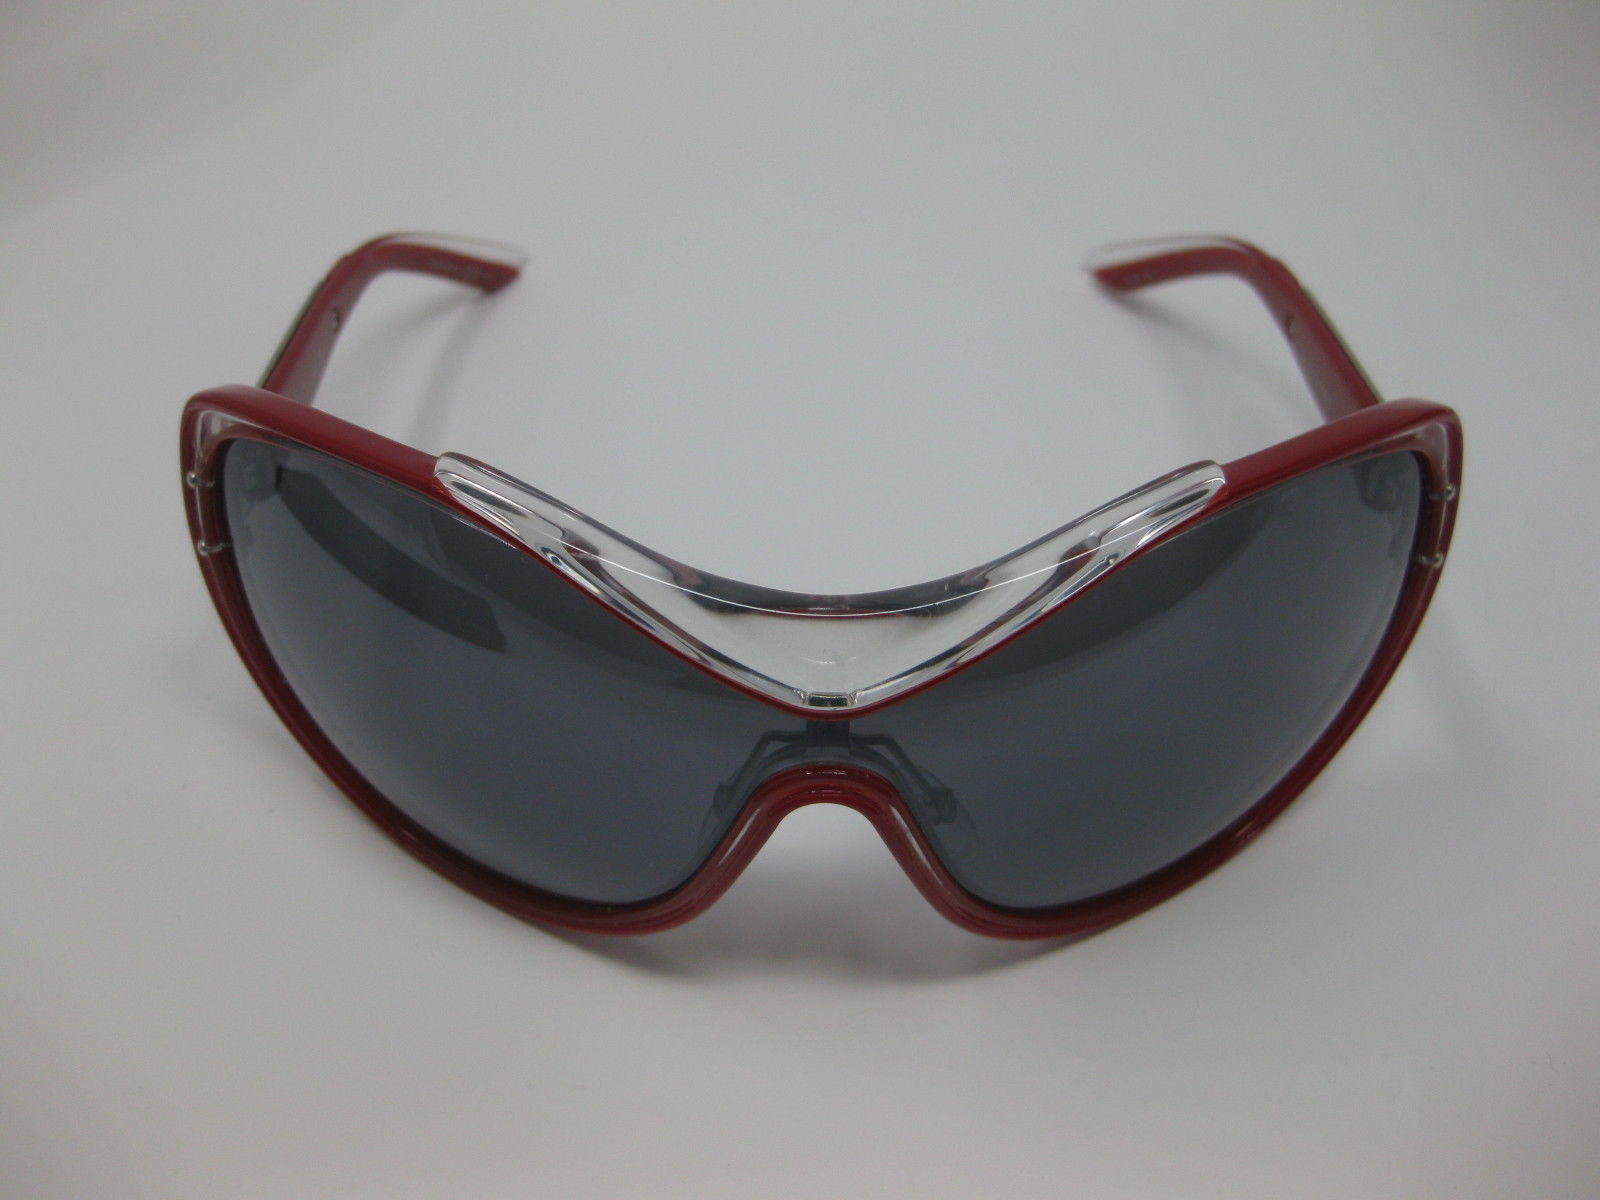 7b8b1a6177 Dior Striking 62Y ZH Crystal Red Striking Sunglasses Lens Oversized New